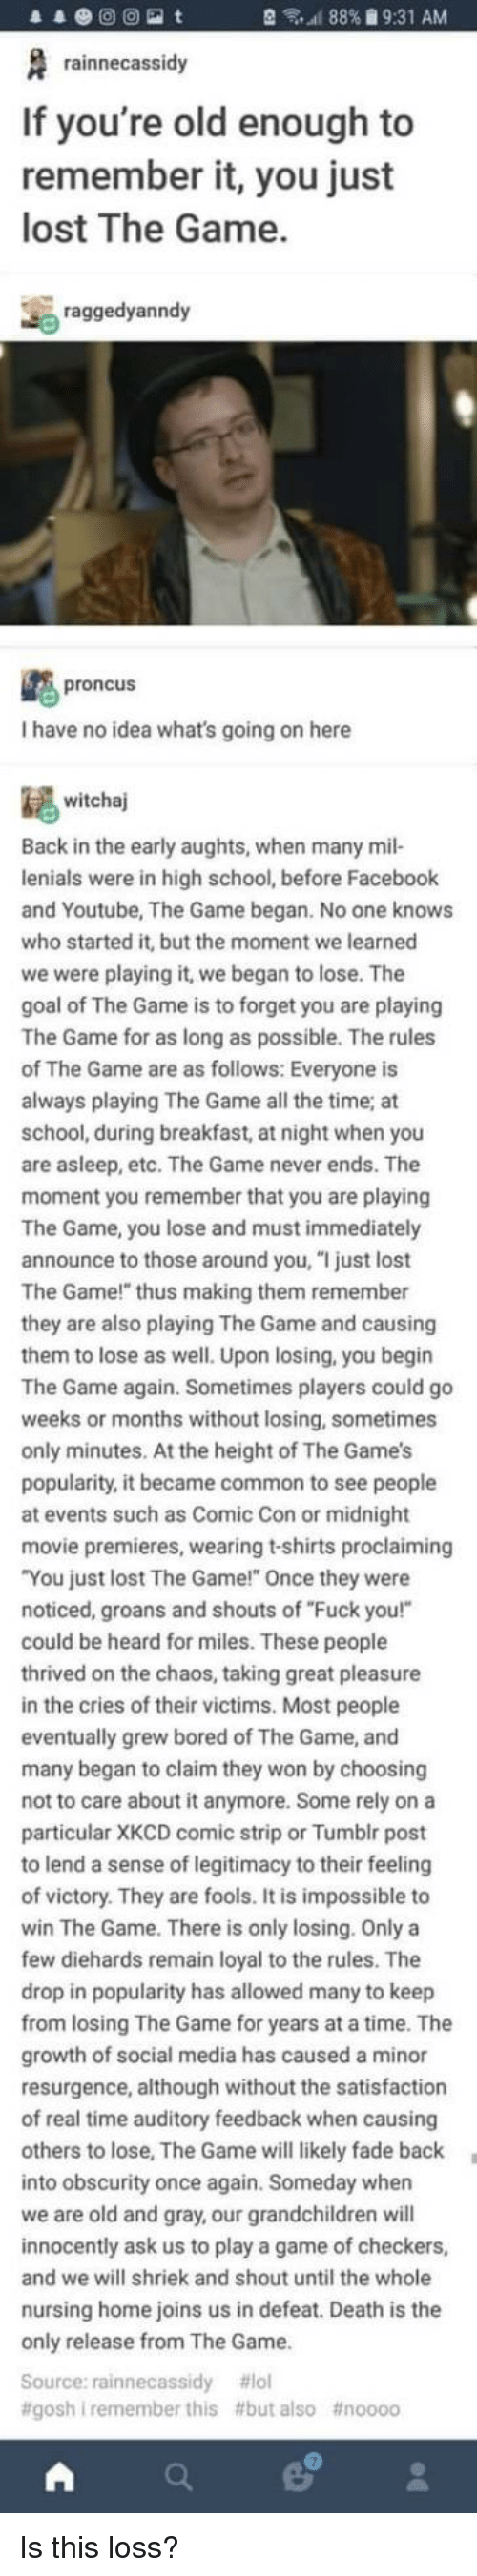 "tumblr post: 88% 9:31 AM  rainnecassidy  If you're old enough to  remember it, you just  lost The Game.  raggedyanndy  proncus  I have no idea what's going on here  witchaj  Back in the early aughts, when many mil-  lenials were in high school, before Facebook  and Youtube, The Game began. No one knows  who started it, but the moment we learned  we were playing it, we began to lose. The  goal of The Game is to forget you are playing  The Game for as long as possible. The rules  The Game are as follows: Everyone is  ays playing The Game all the time; at  school, during breakfast, at night when you  are asleep, etc. The Game never ends. The  moment you remember that you are playing  The Game, you lose and must immediately  announce to those around you, ""I just lost  The Game!"" thus making them remember  they are also playing The Game and causing  them to lose as well. Upon losing, you begin  The Game again. Sometimes players could go  weeks or months without losing, sometimes  only minutes. At the height of The Game's  popularity, it became common to see people  at events such as Comic Con or midnight  movie premieres, wearing t-shirts proclaiming  You just lost The Game!"" Once they were  noticed, groans and shouts of ""Fuck you!""  could be heard for miles. These people  rived on the chaos, taking great pleasure  in the cries of their victims. Most people  eventually grew bored of The Game, and  many began to claim they won by choosing  not to care about it anymore. Some rely on a  particular XKCD comic strip or Tumblr post  to lend a sense of legitimacy to their feeli  of victory. They are fools. It is impossible to  win The Game. There is only losing. Only a  few diehards remain loyal to the rules. The  drop in popularity has allowed many to keep  m losing The Game for years at a time. The  growth of social media has caused a minor  resurgence, although without the satisfaction  of real time auditory feedback when caus  others to lose, The Game will likely fade back  into obscurity once again. Someday whern  we are old and gray, our grandchildren will  innocently ask us to play a game of checkers,  and we will shriek and shout until the whole  nursing home joins us in defeat. Death is the  only release from The Game  Source: rainnecassidy #101  #goshi remember this #but also Is this loss?"